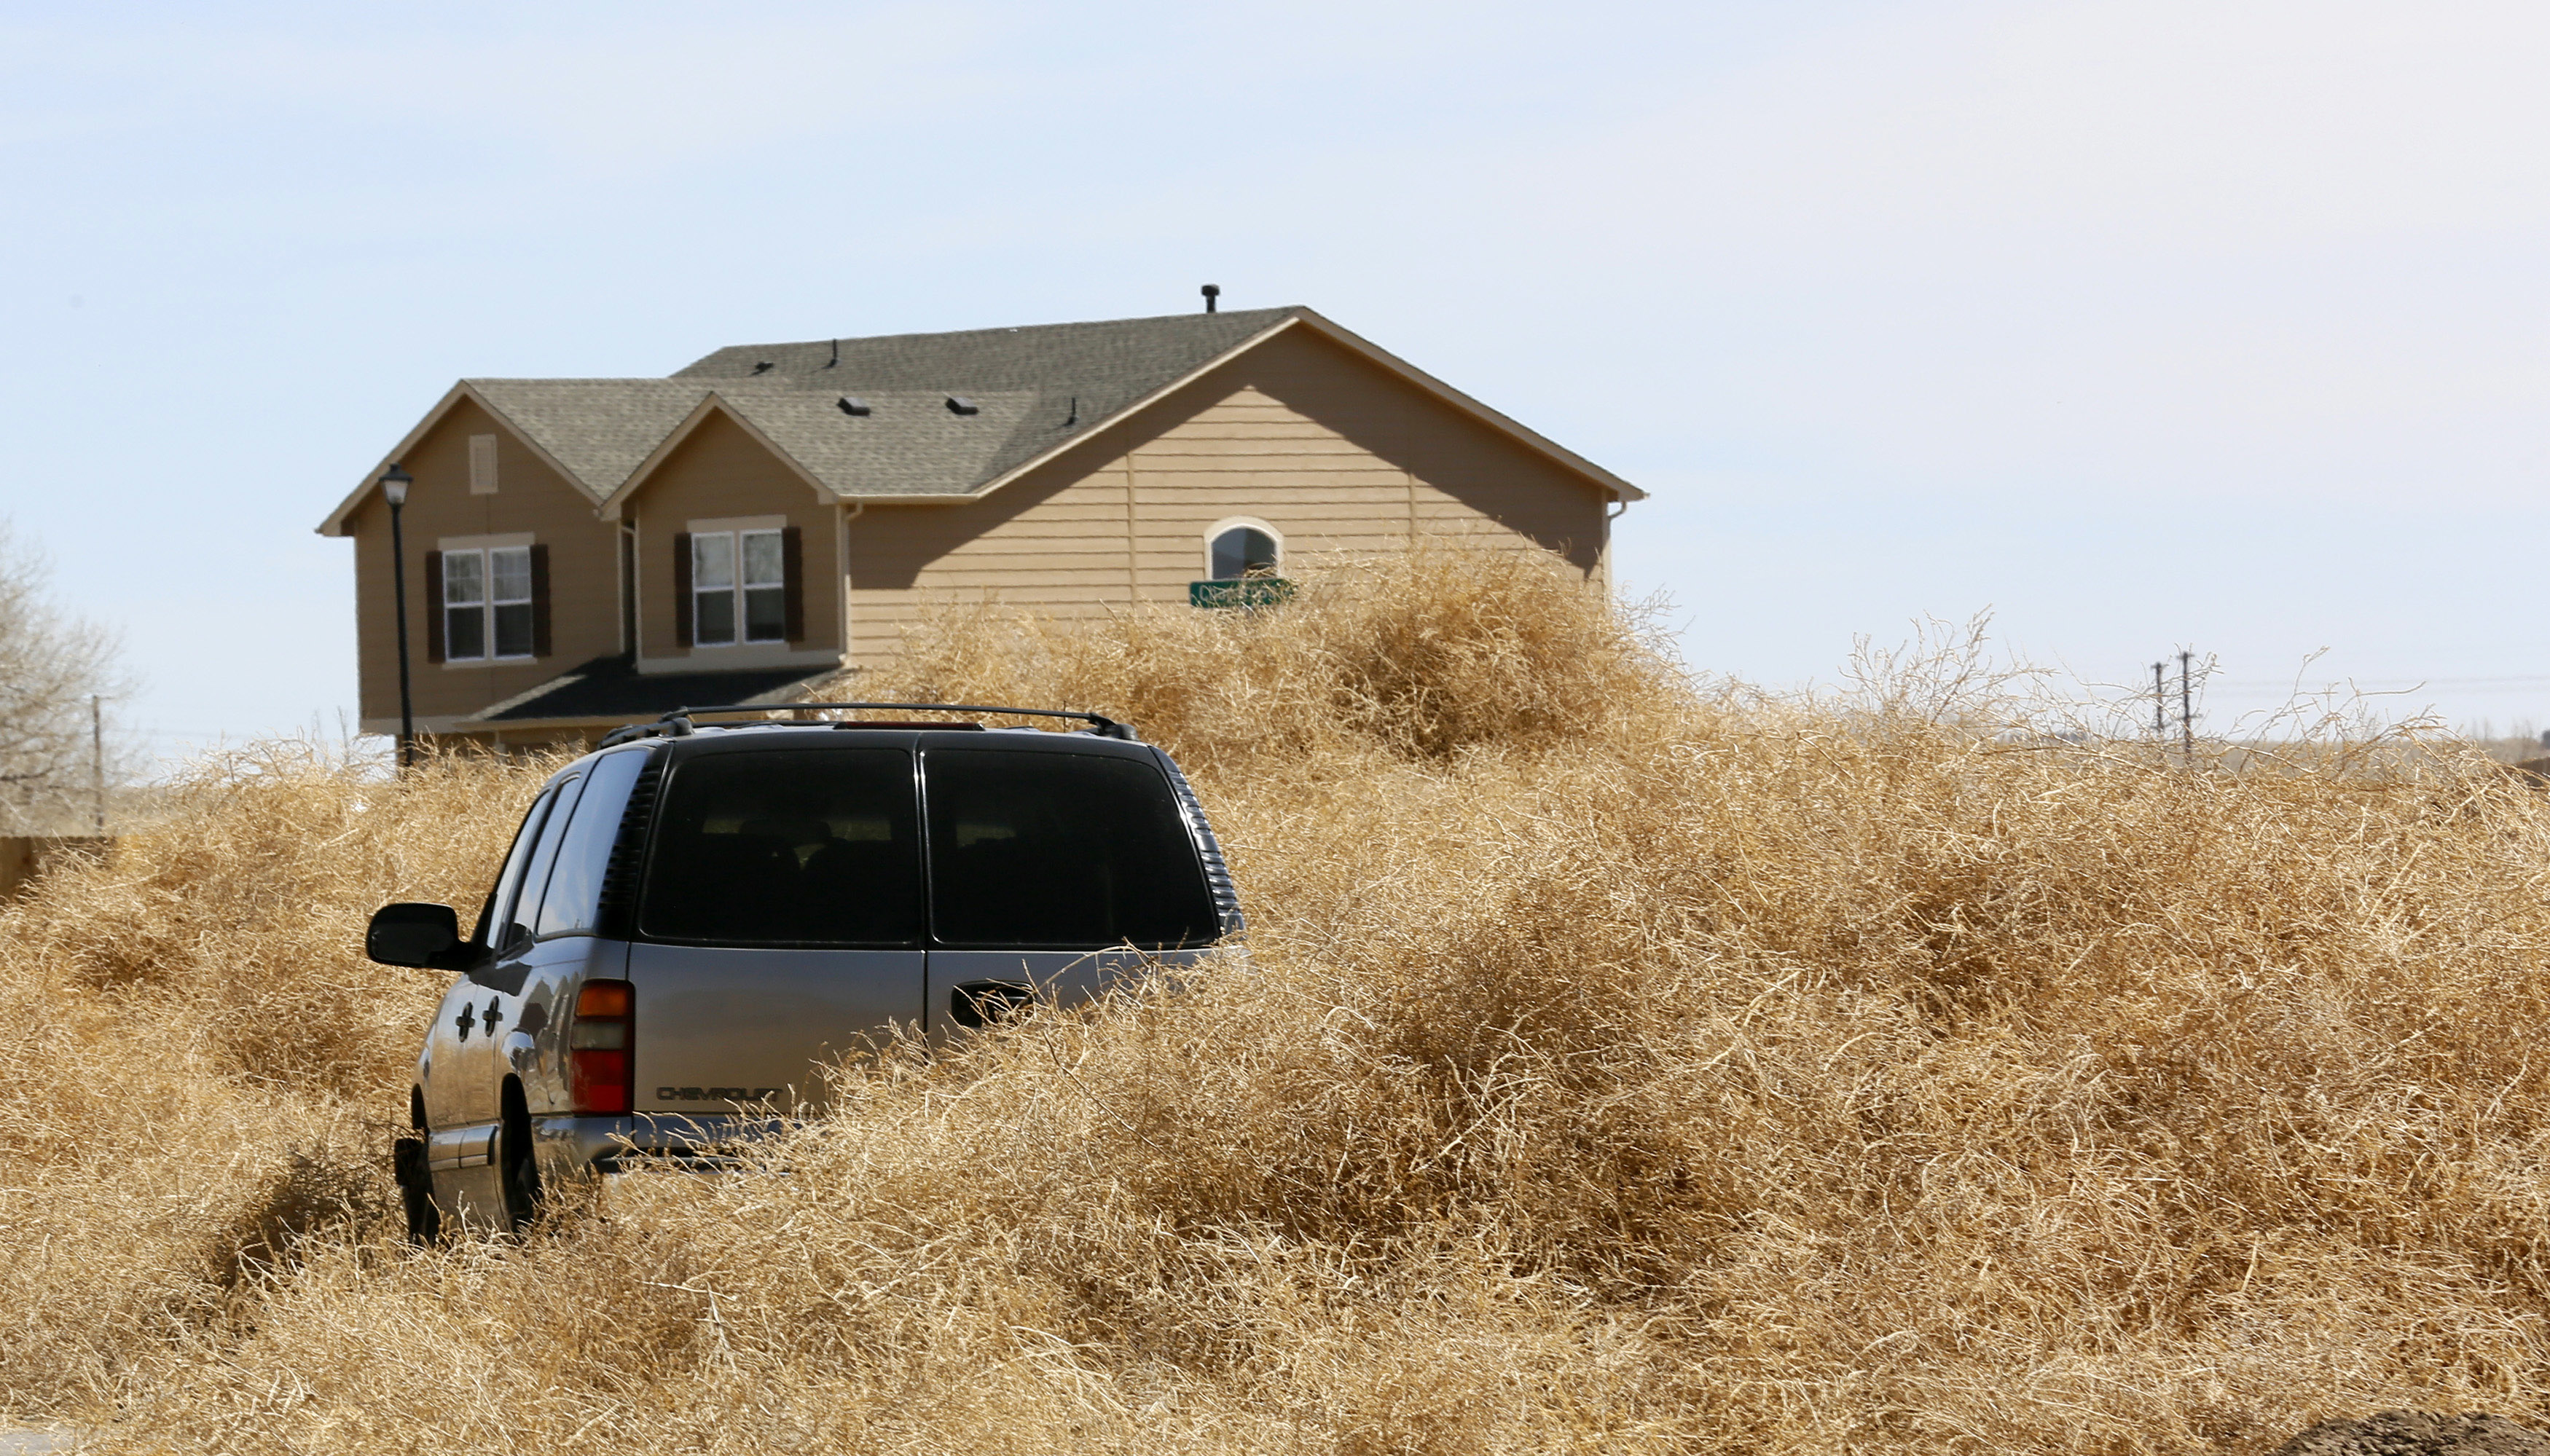 Tumbleweed surrounds a car in Fountain, Colorado March 20, 2014.